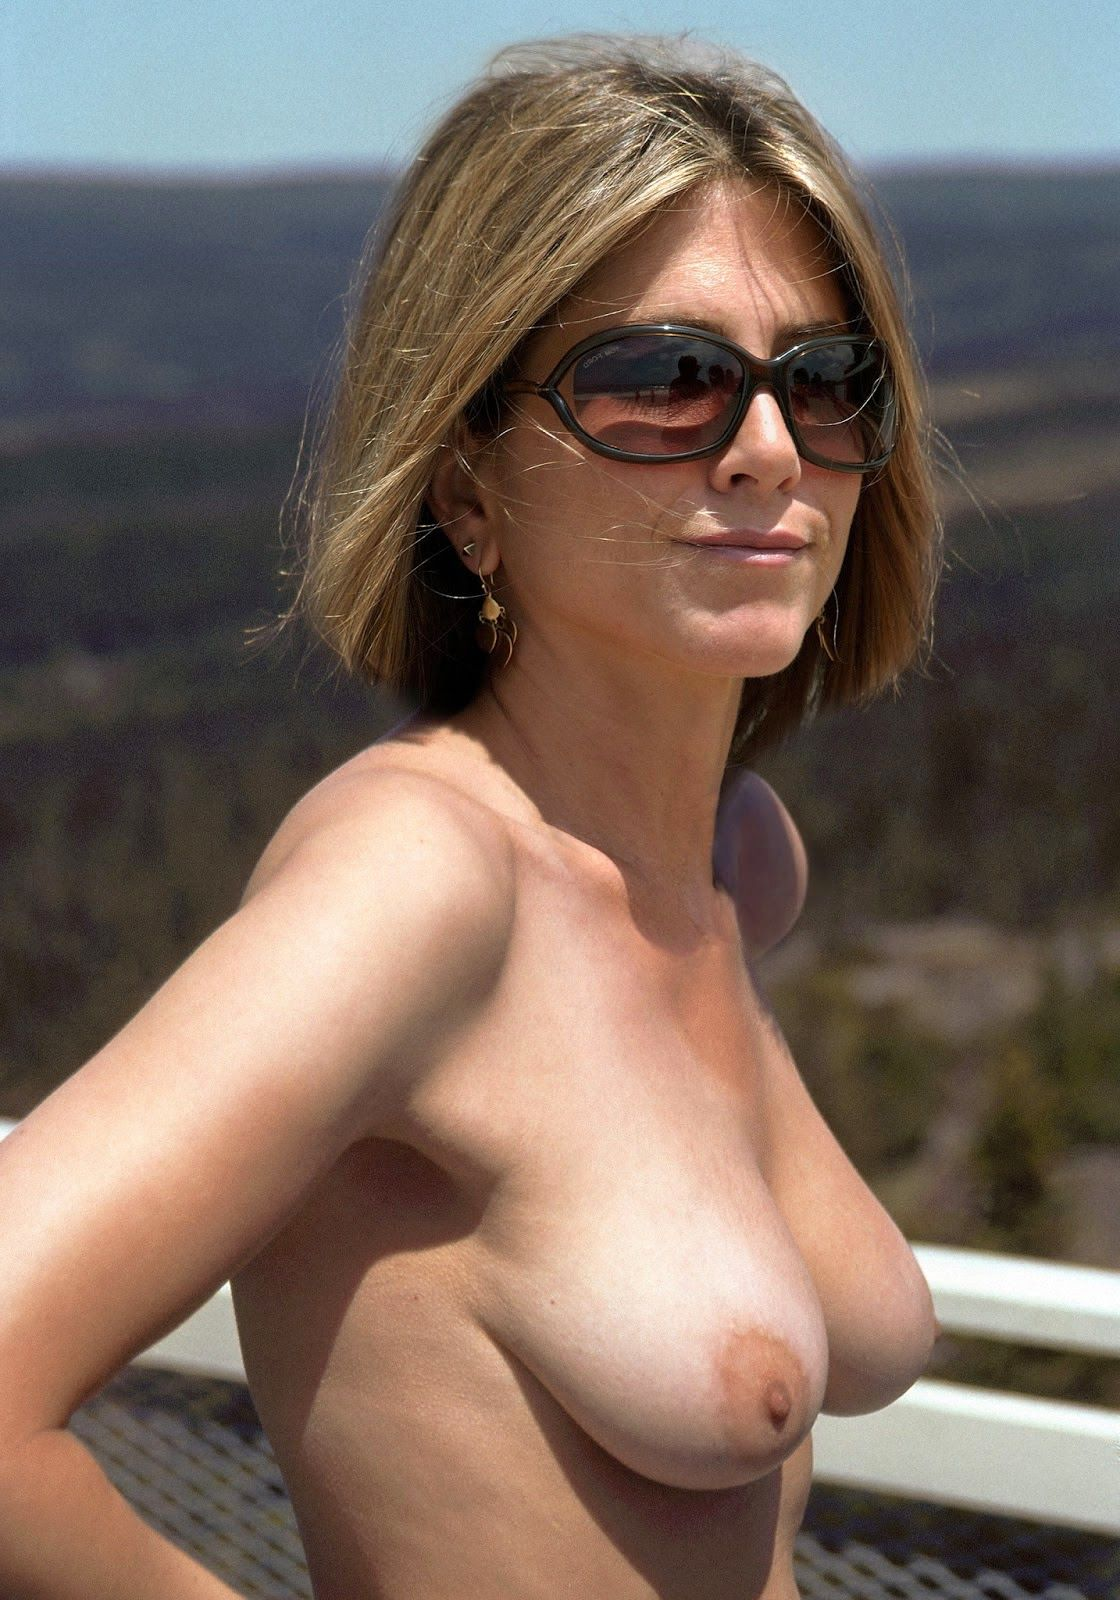 Jenifer aniston nude fakes agree with